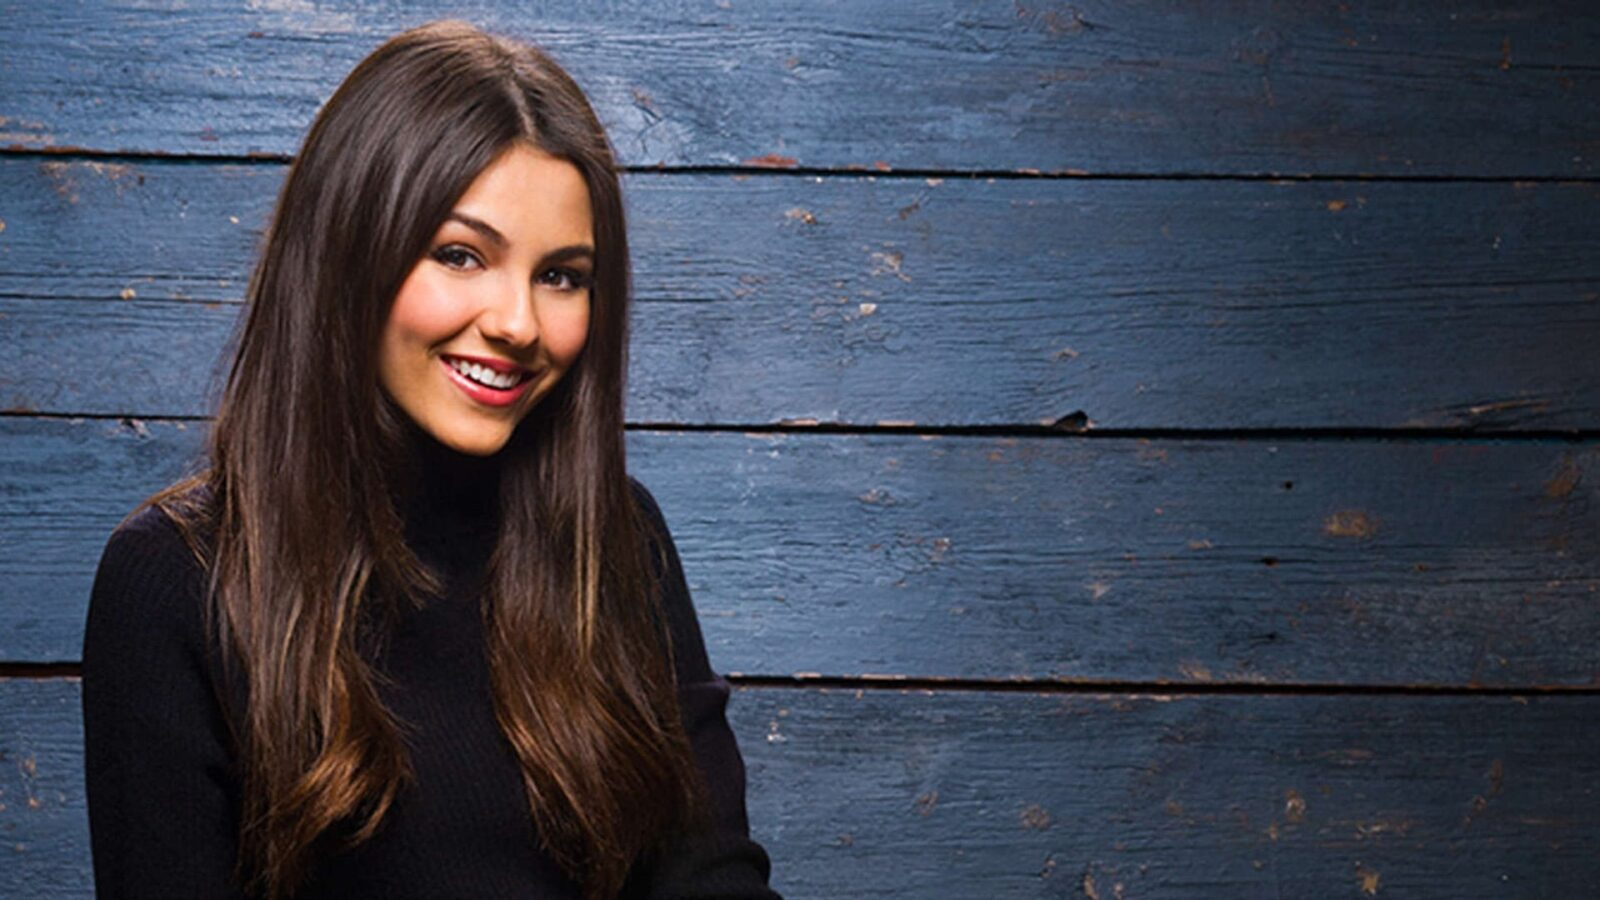 Wallpaper Anime Hd Android Victoria Justice Hd Wallpapers High Quality